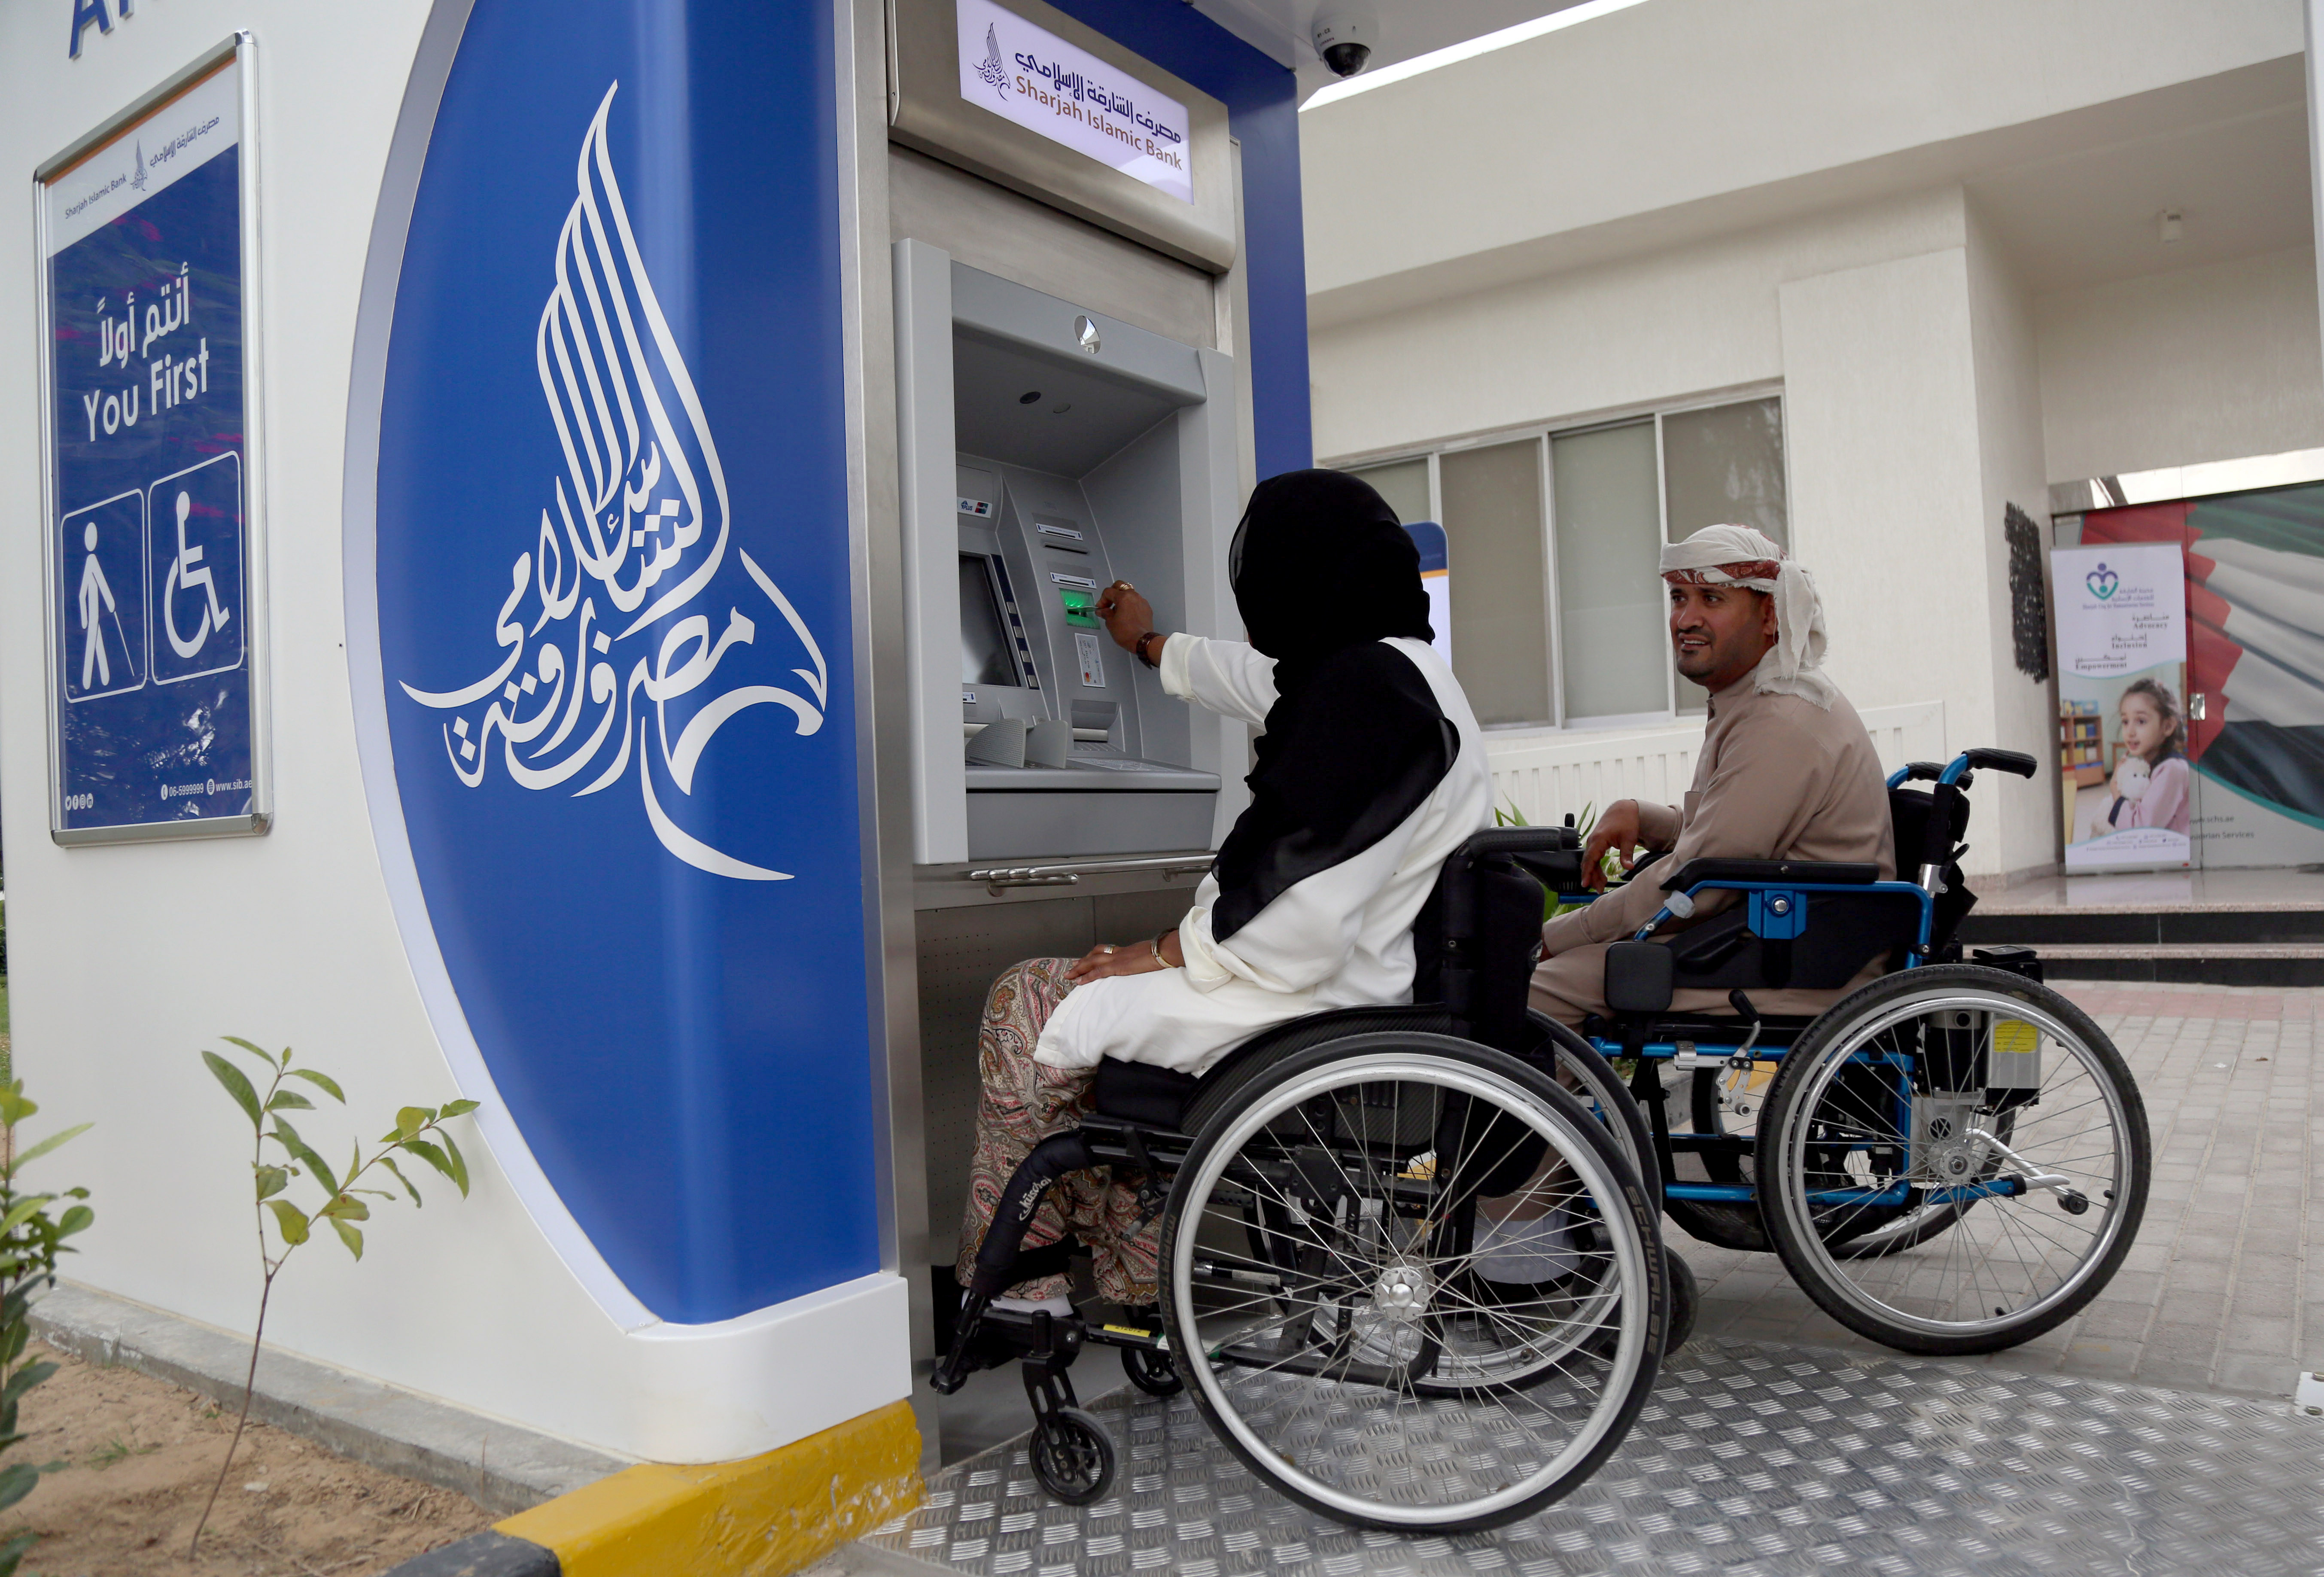 An ATM designed for visually impaired and people with disabilities in Sharjah, UAE.